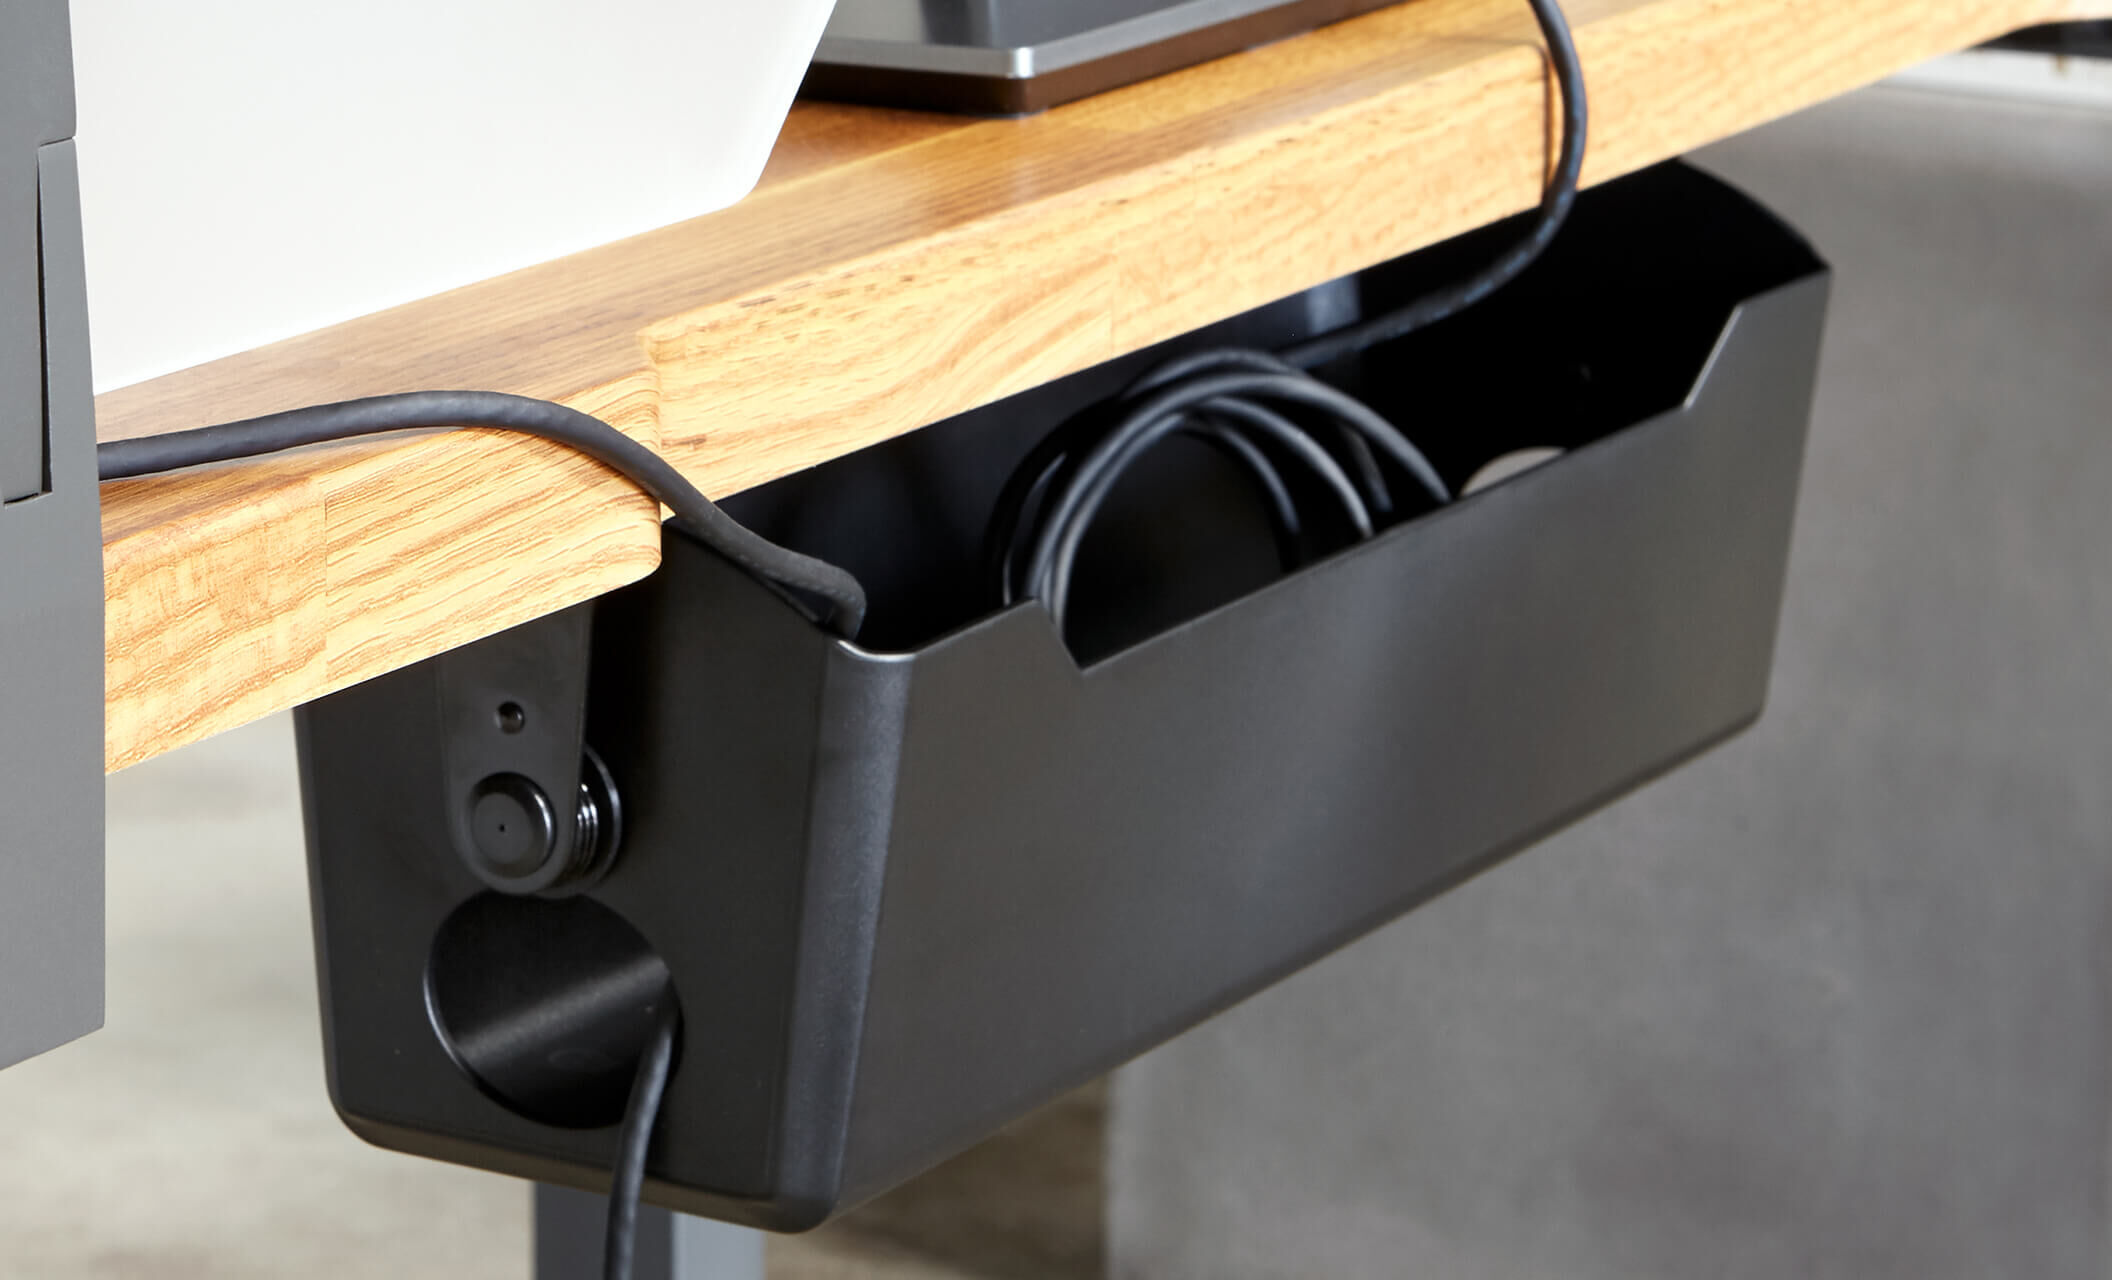 black cable management tray attached to desk in office setting